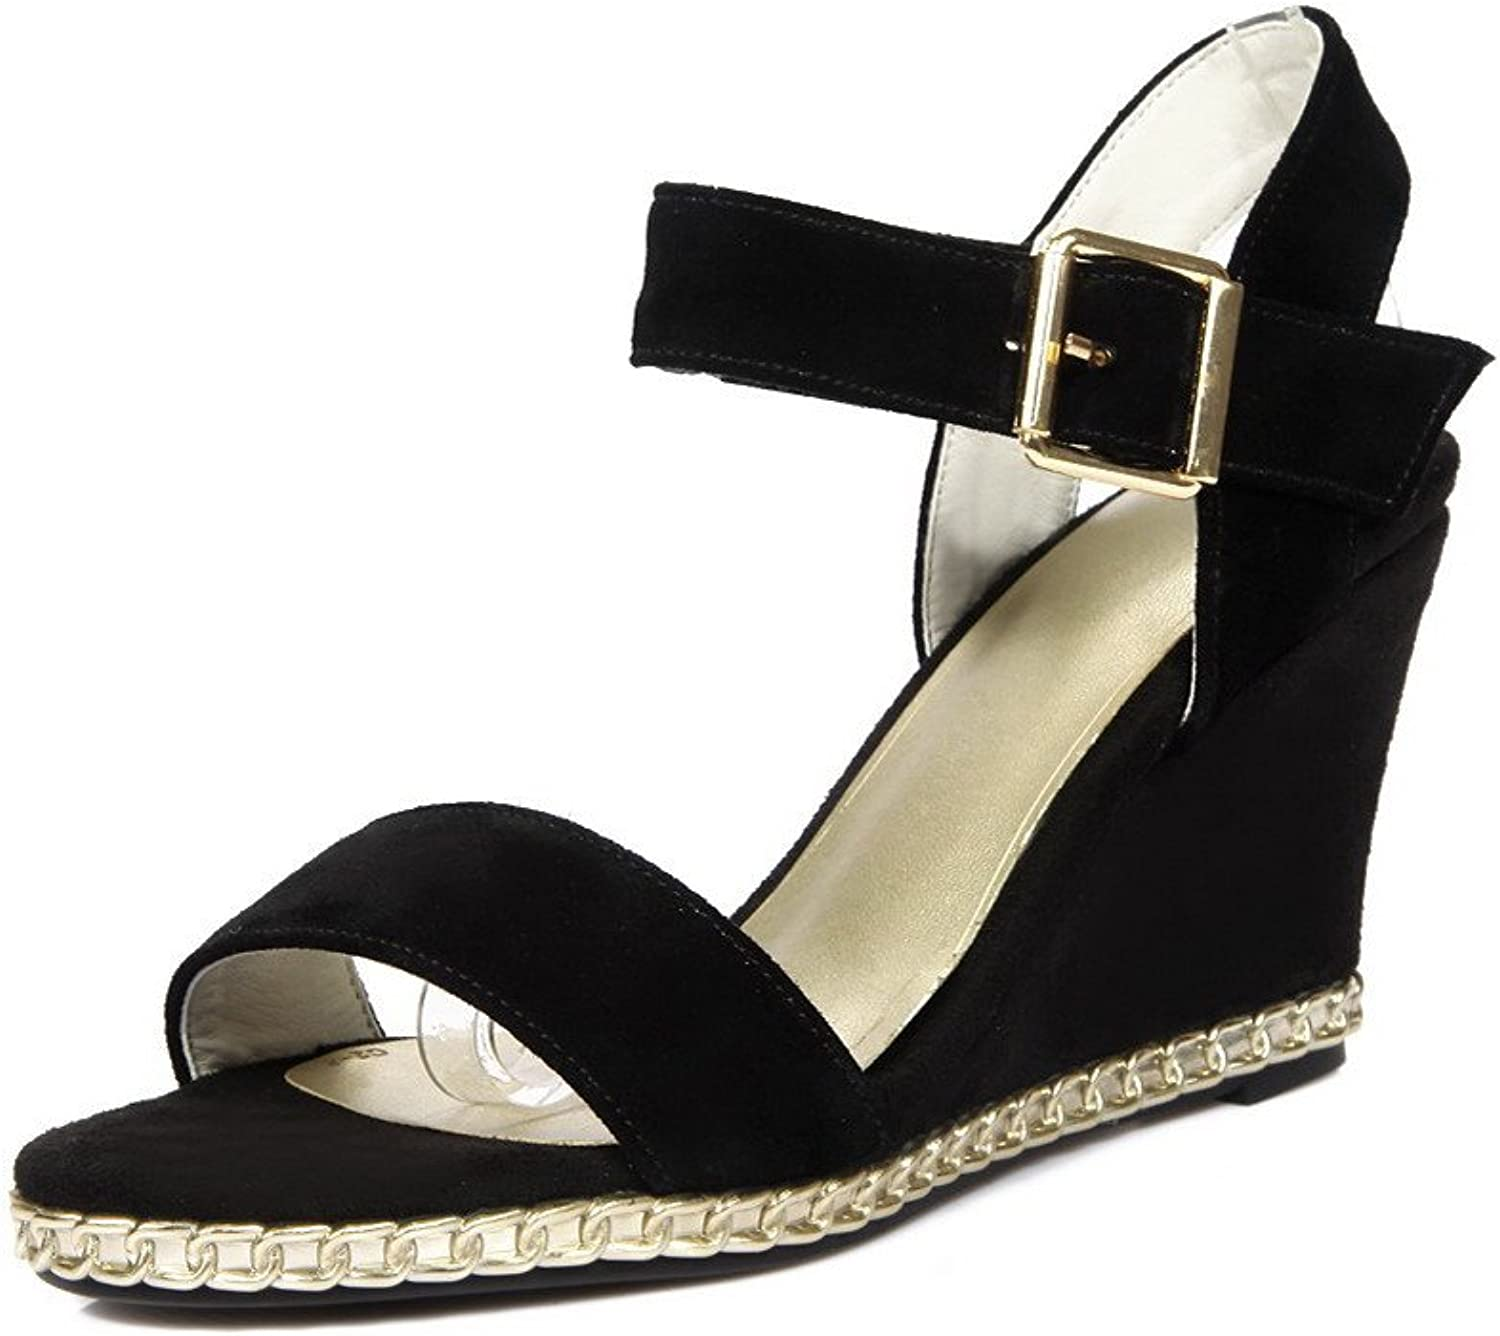 AmoonyFashion Women's Frosted Open-Toe High-Heels Buckle Solid Sandals